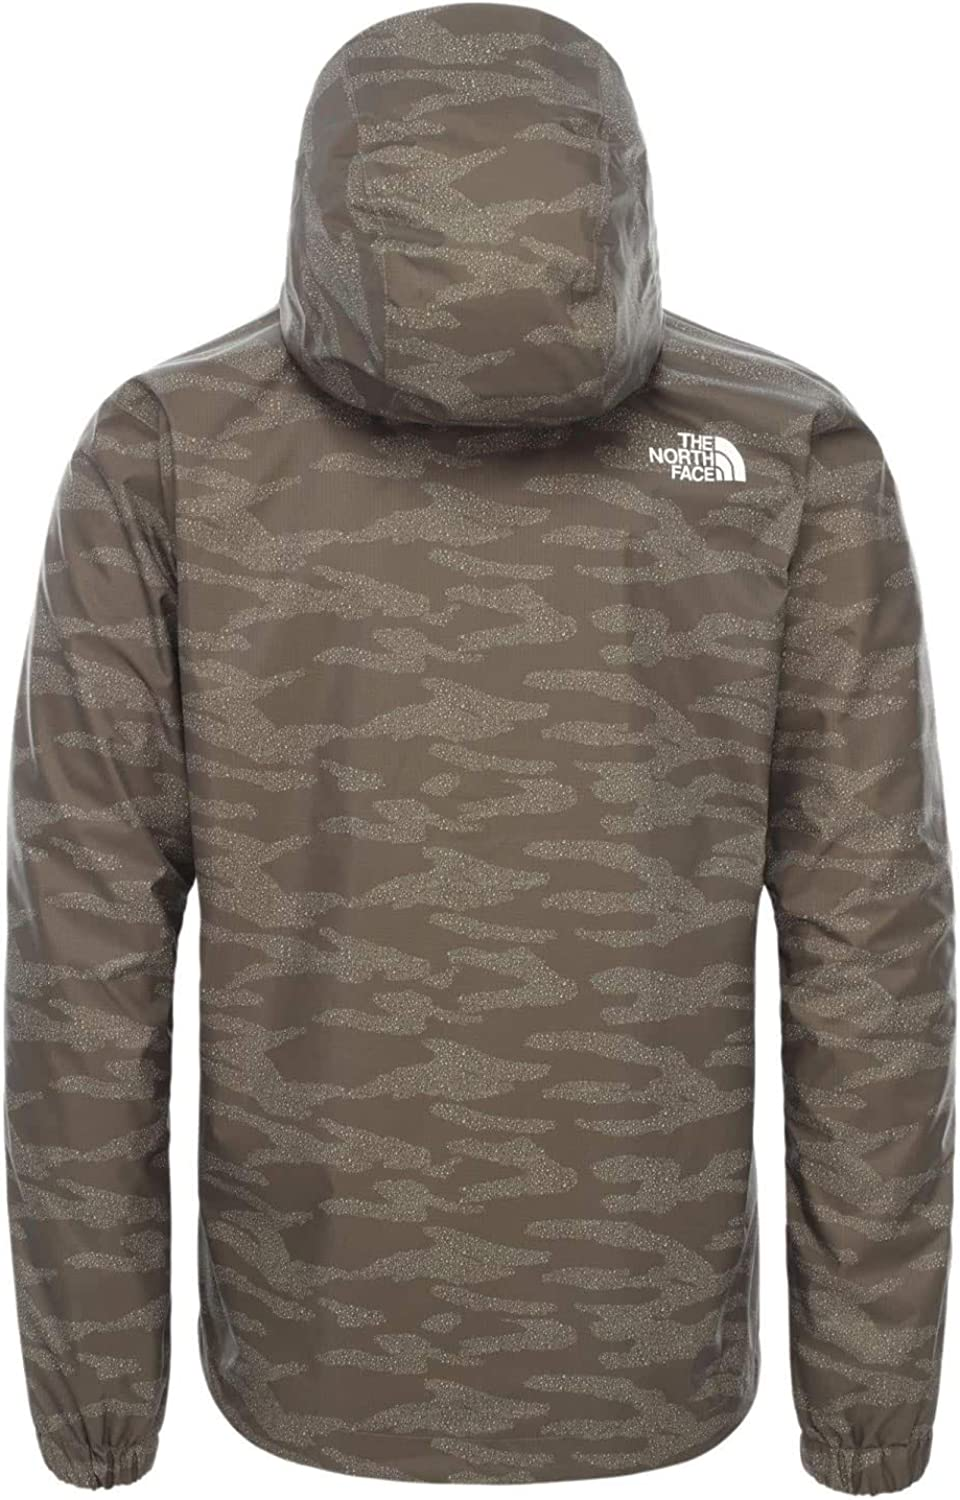 The North Face Quest 1, Giacca Impermeabile Uomo Beige (120)